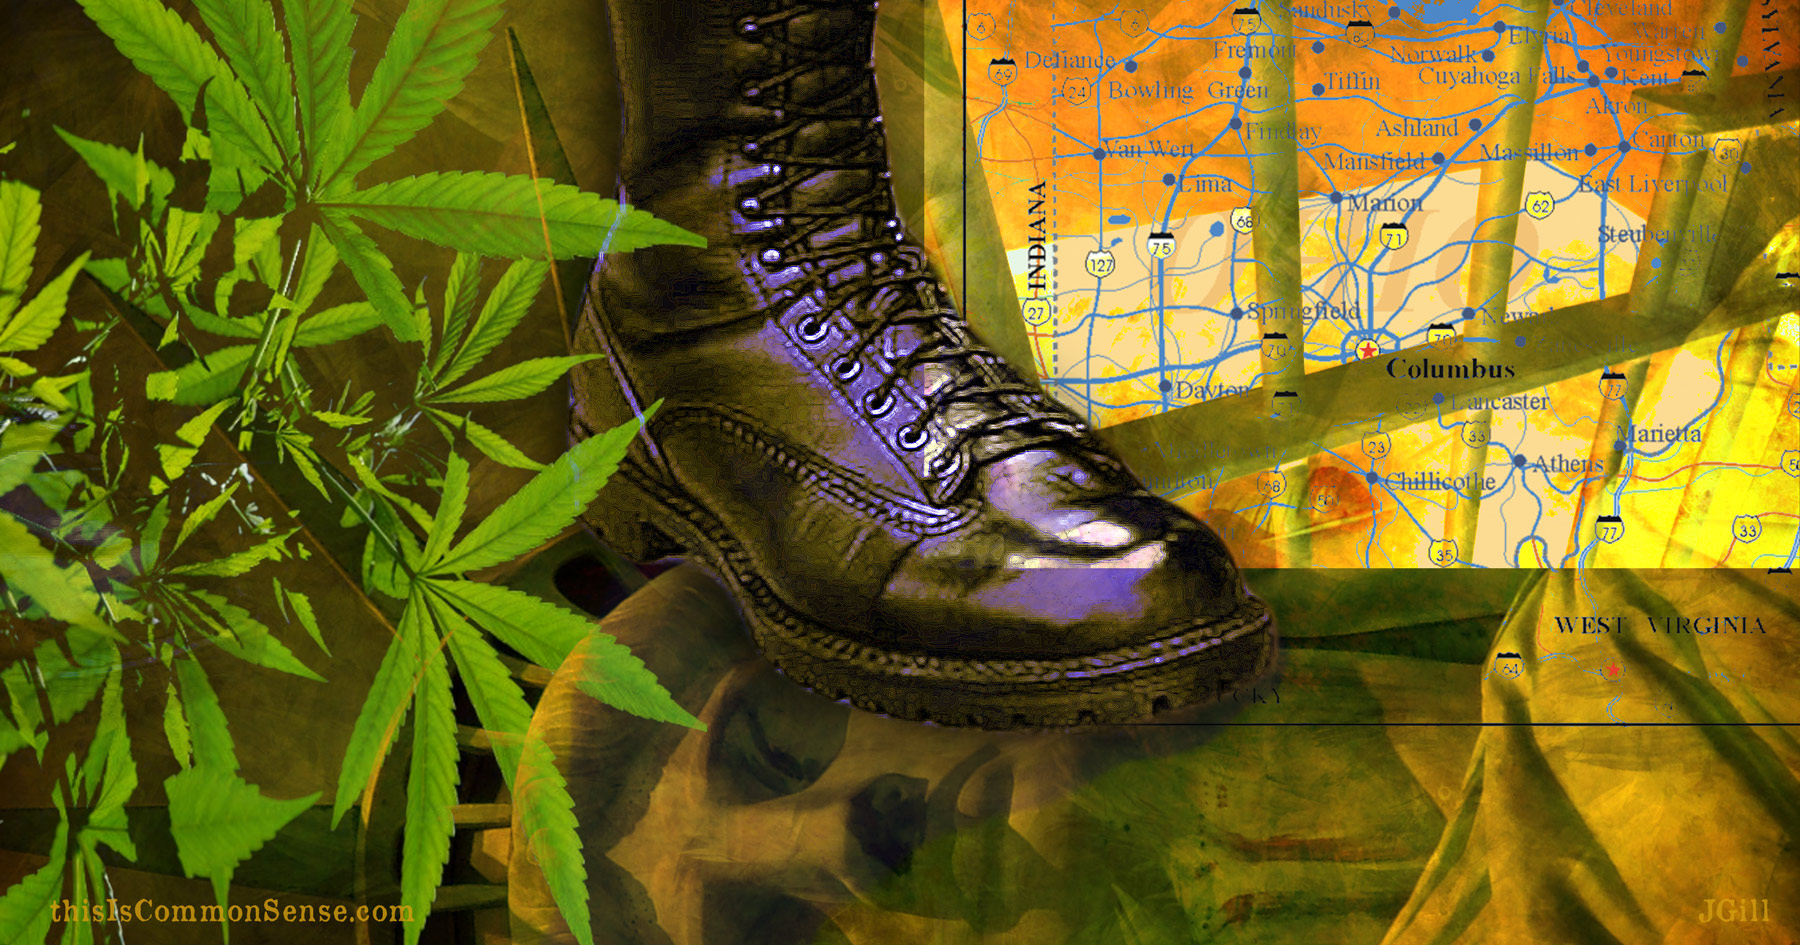 marijuana, legalization, Ohio, law, crime, illustration, Common Sense